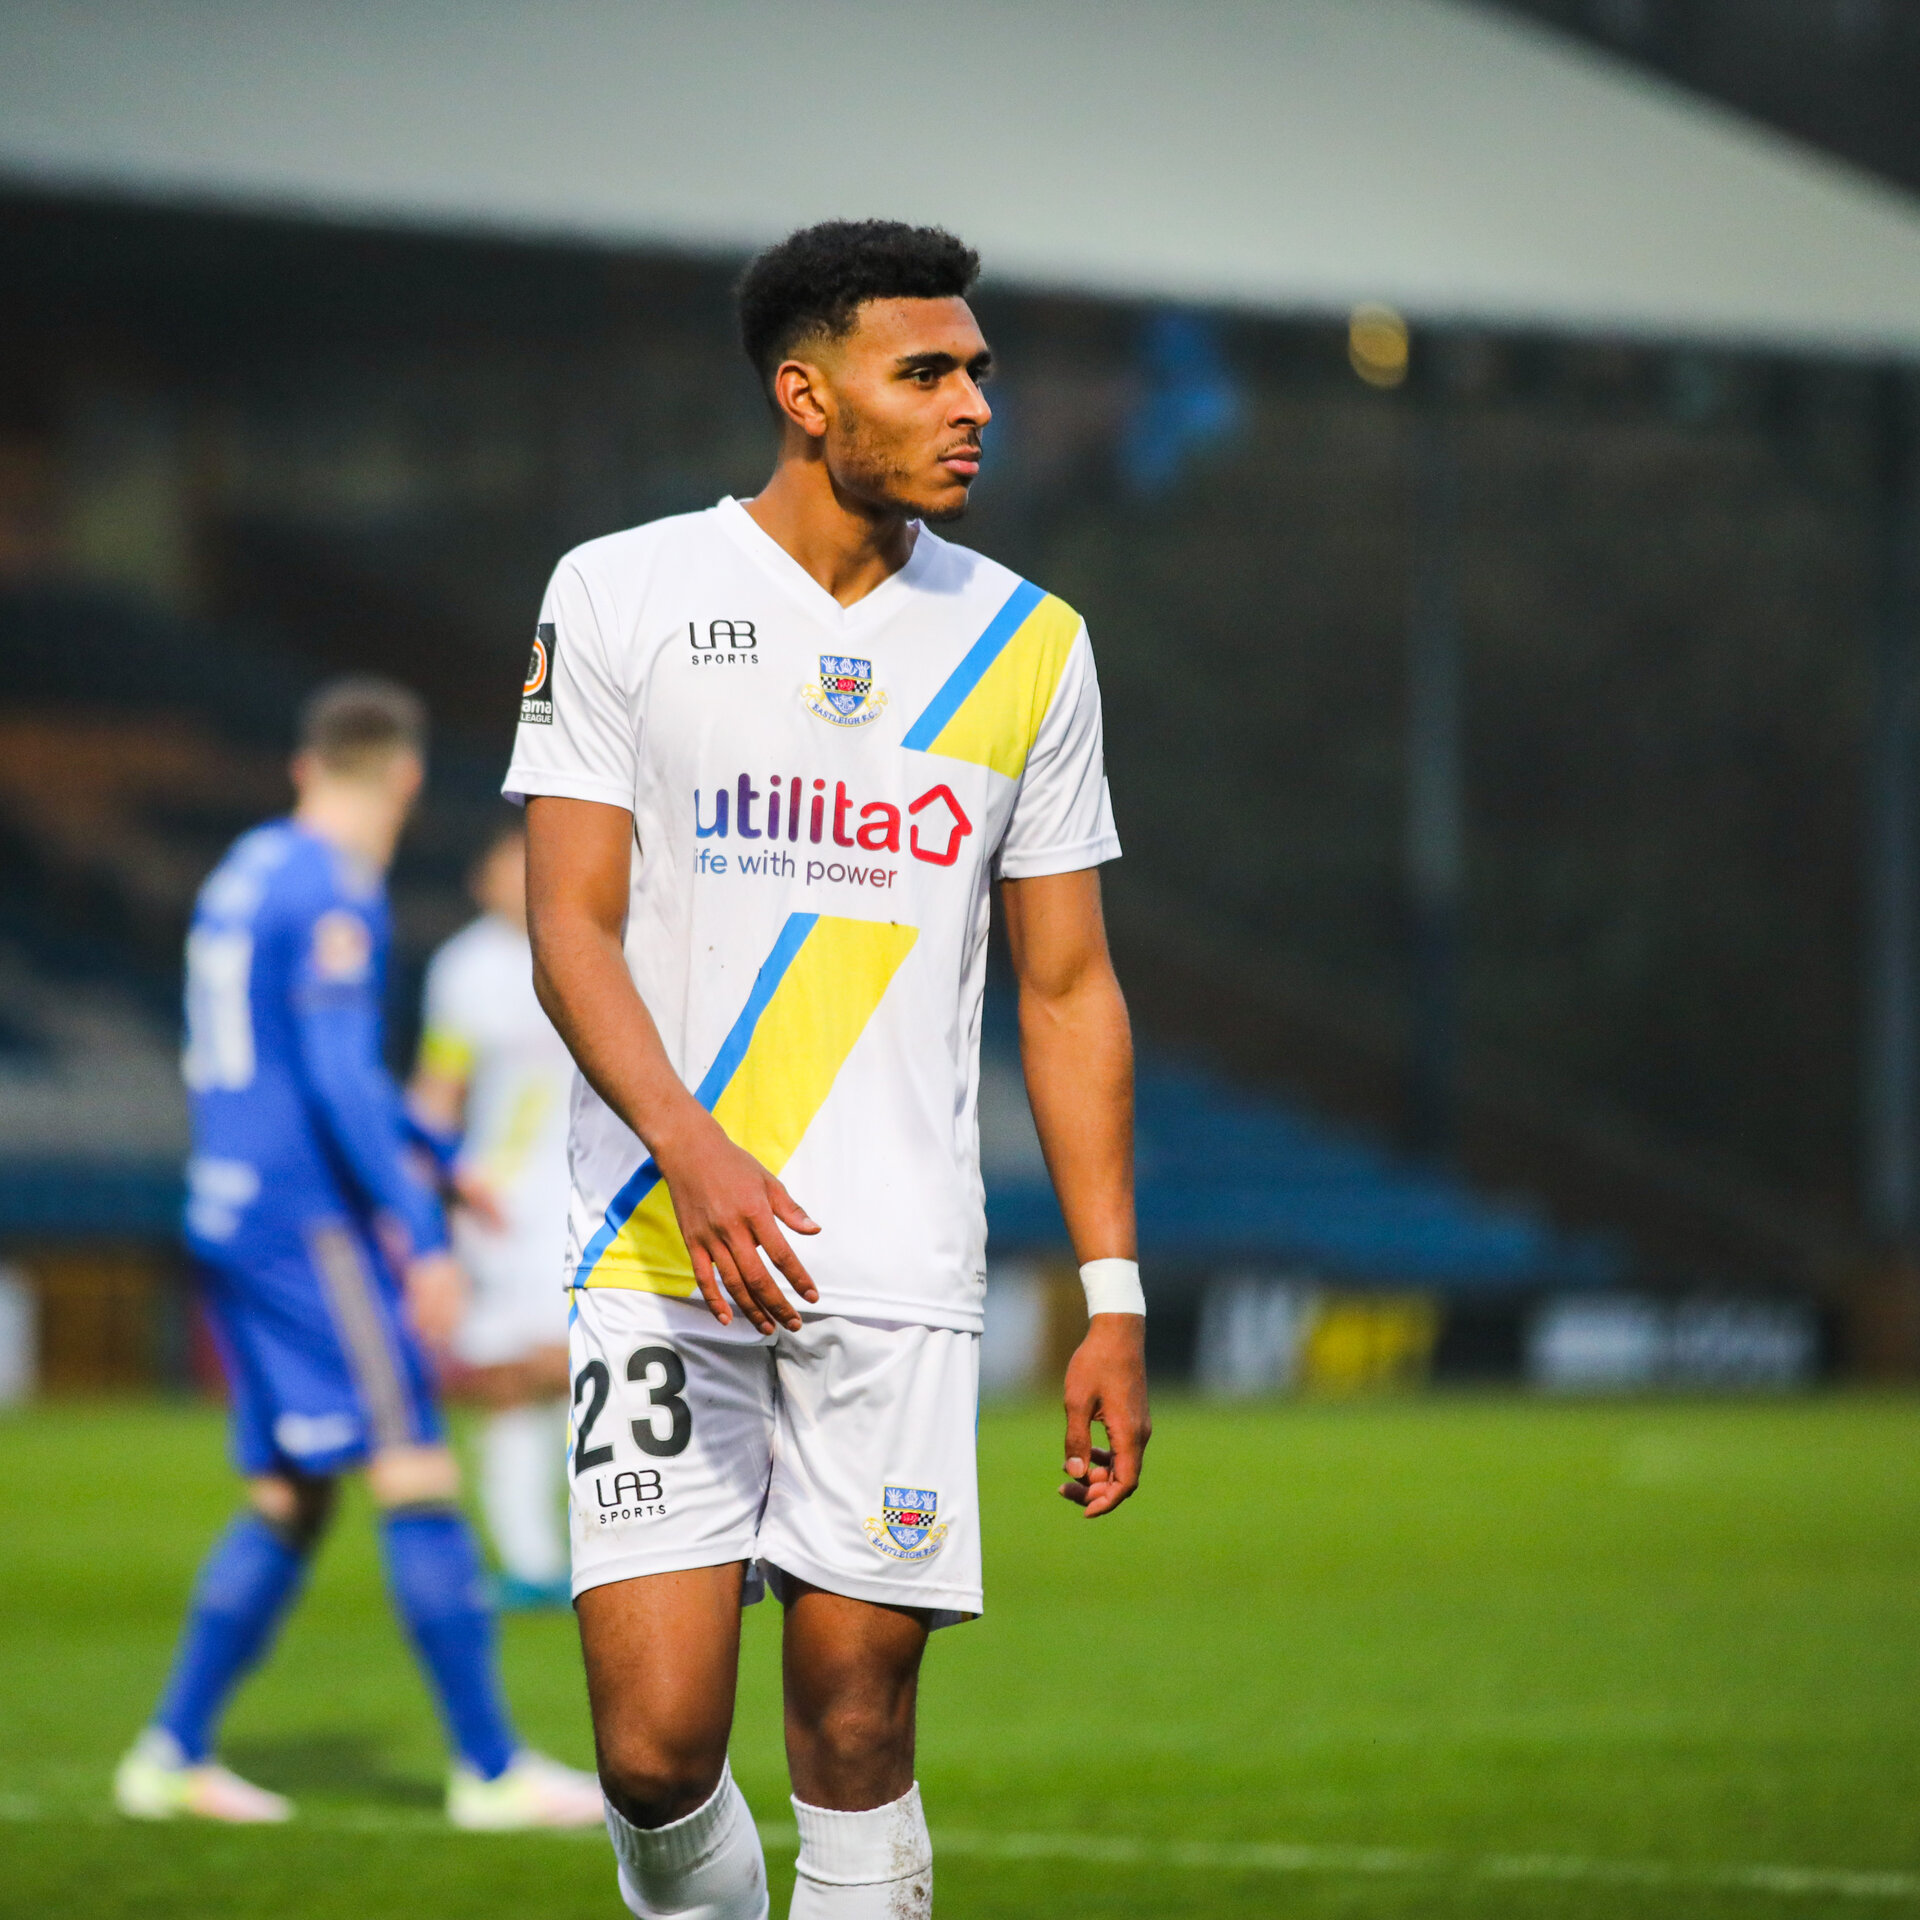 HALIFAX, ENGLAND - NOVEMBER 23: Marcus Barnes of Eastleigh FC during the Vanarama National League match between Halifax Town and Eastleigh FC at the The Shay Stadium on November 23, 2019 in Halifax, England